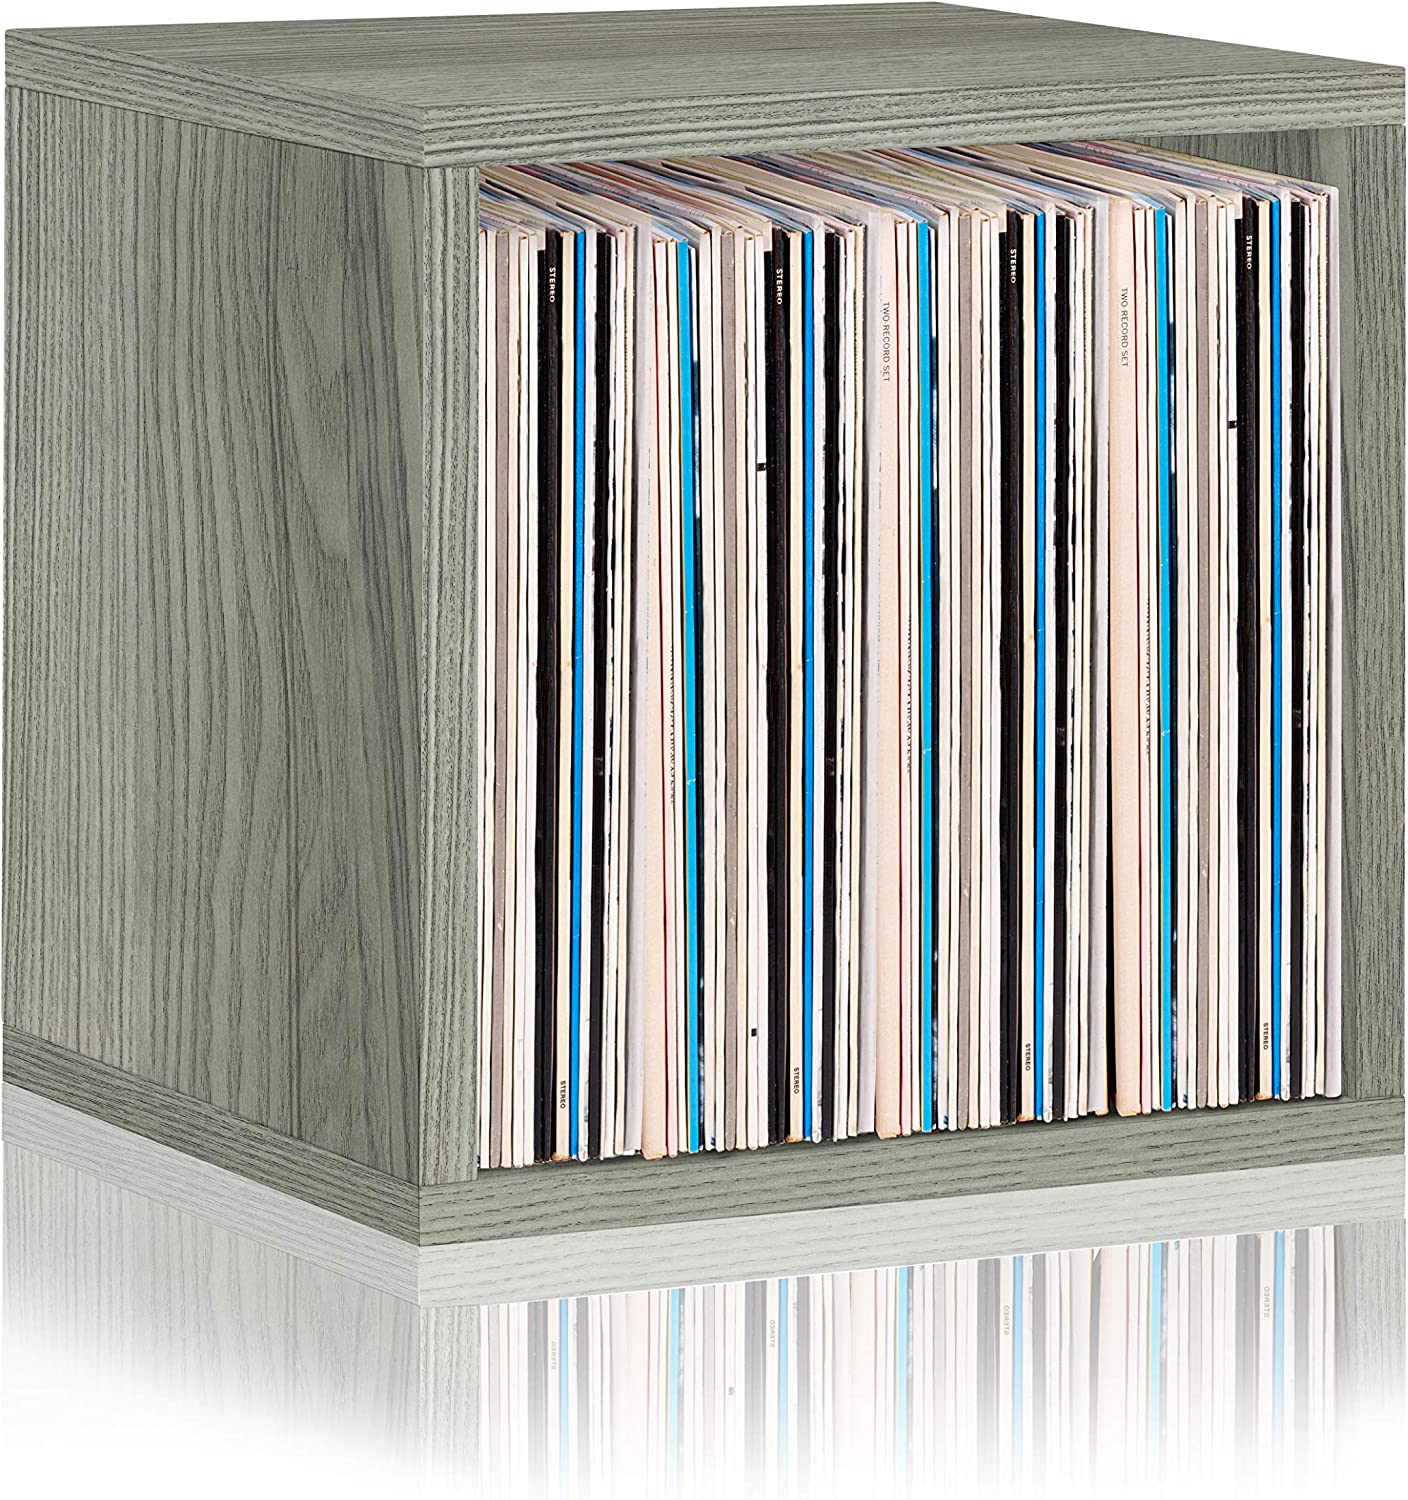 Way Basics 2-Shelf Vinyl Record Storage Cube and LP Record Album Storage Shelf Grey Tool-Free Assembly and Uniquely Crafted from Sustainable Non Toxic zBoard paperboard